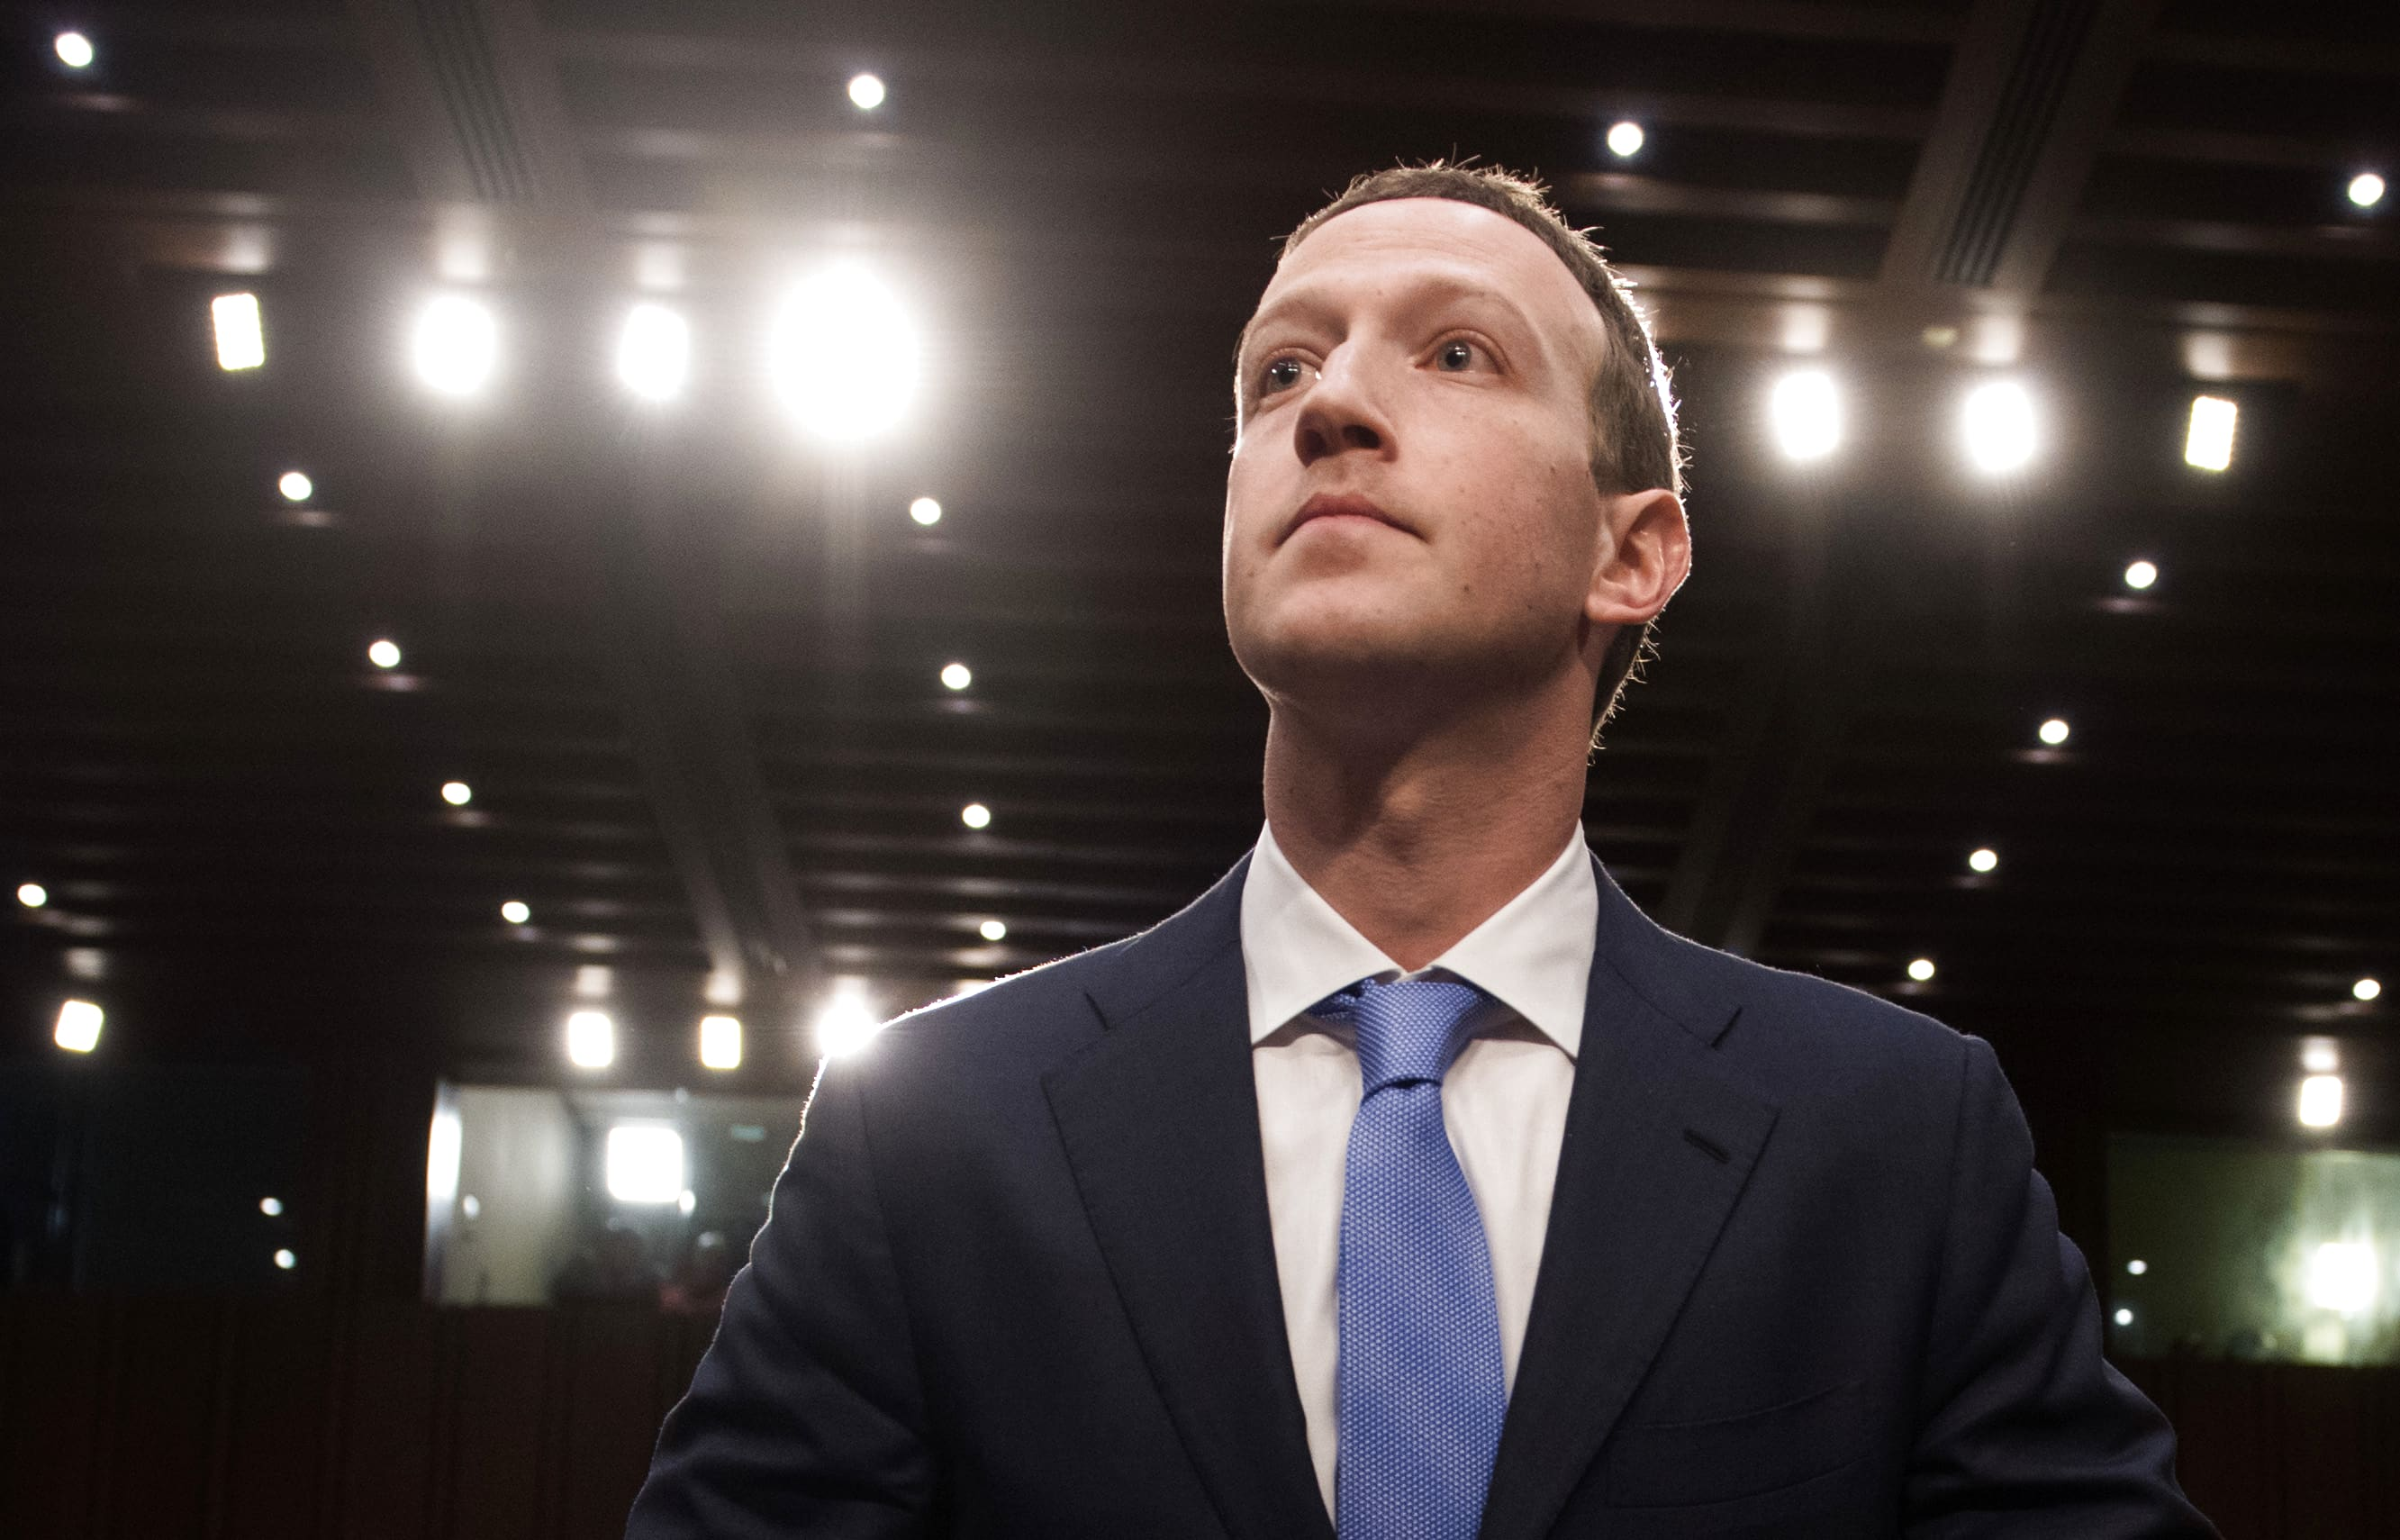 Senator challenges Zuckerberg testimony as 'at best, incomplete' after report of Facebook's audio transcription